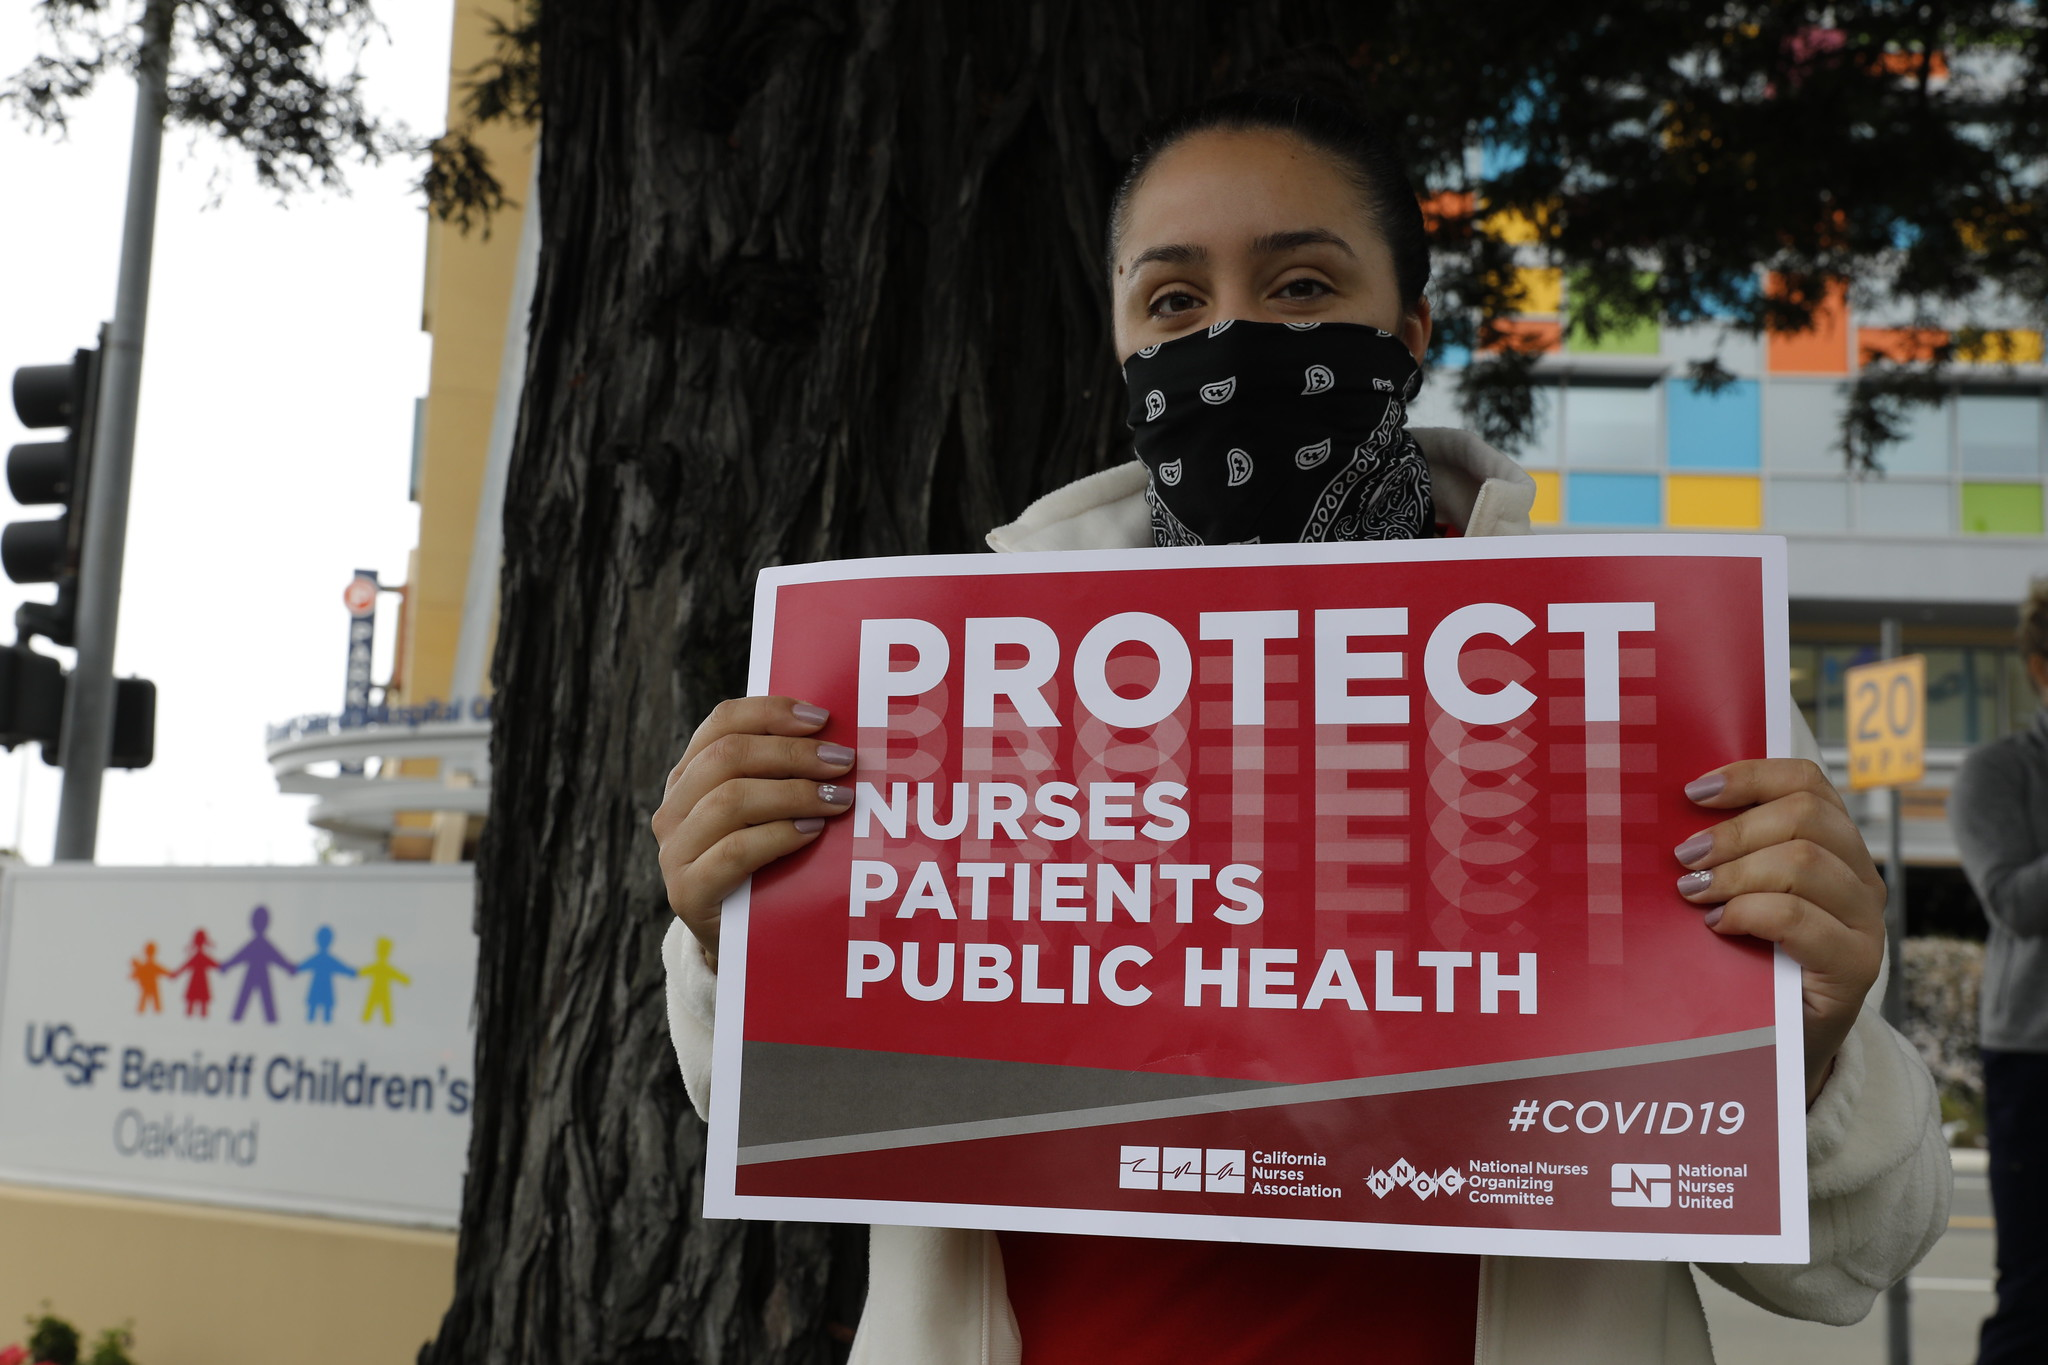 Nurses Call For More Data Action To Address Racial Disparities During Covid 19 Crisis National Nurses United